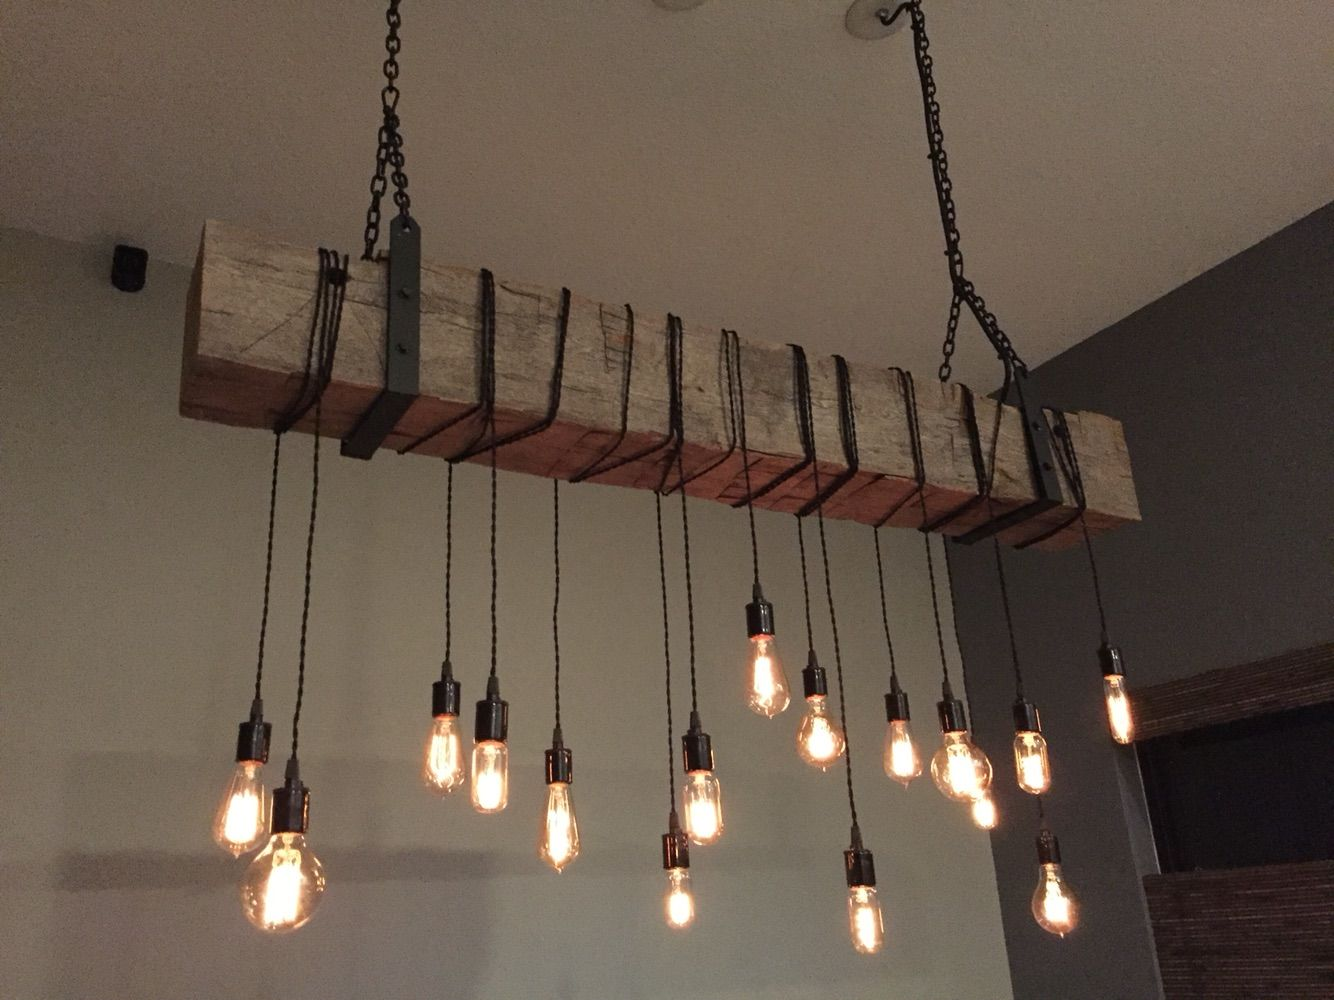 Buy a custom reclaimed barn beam chandelier light fixture modern custom made reclaimed barn beam chandelier light fixture modern industrial rustic restaurant bar aloadofball Image collections